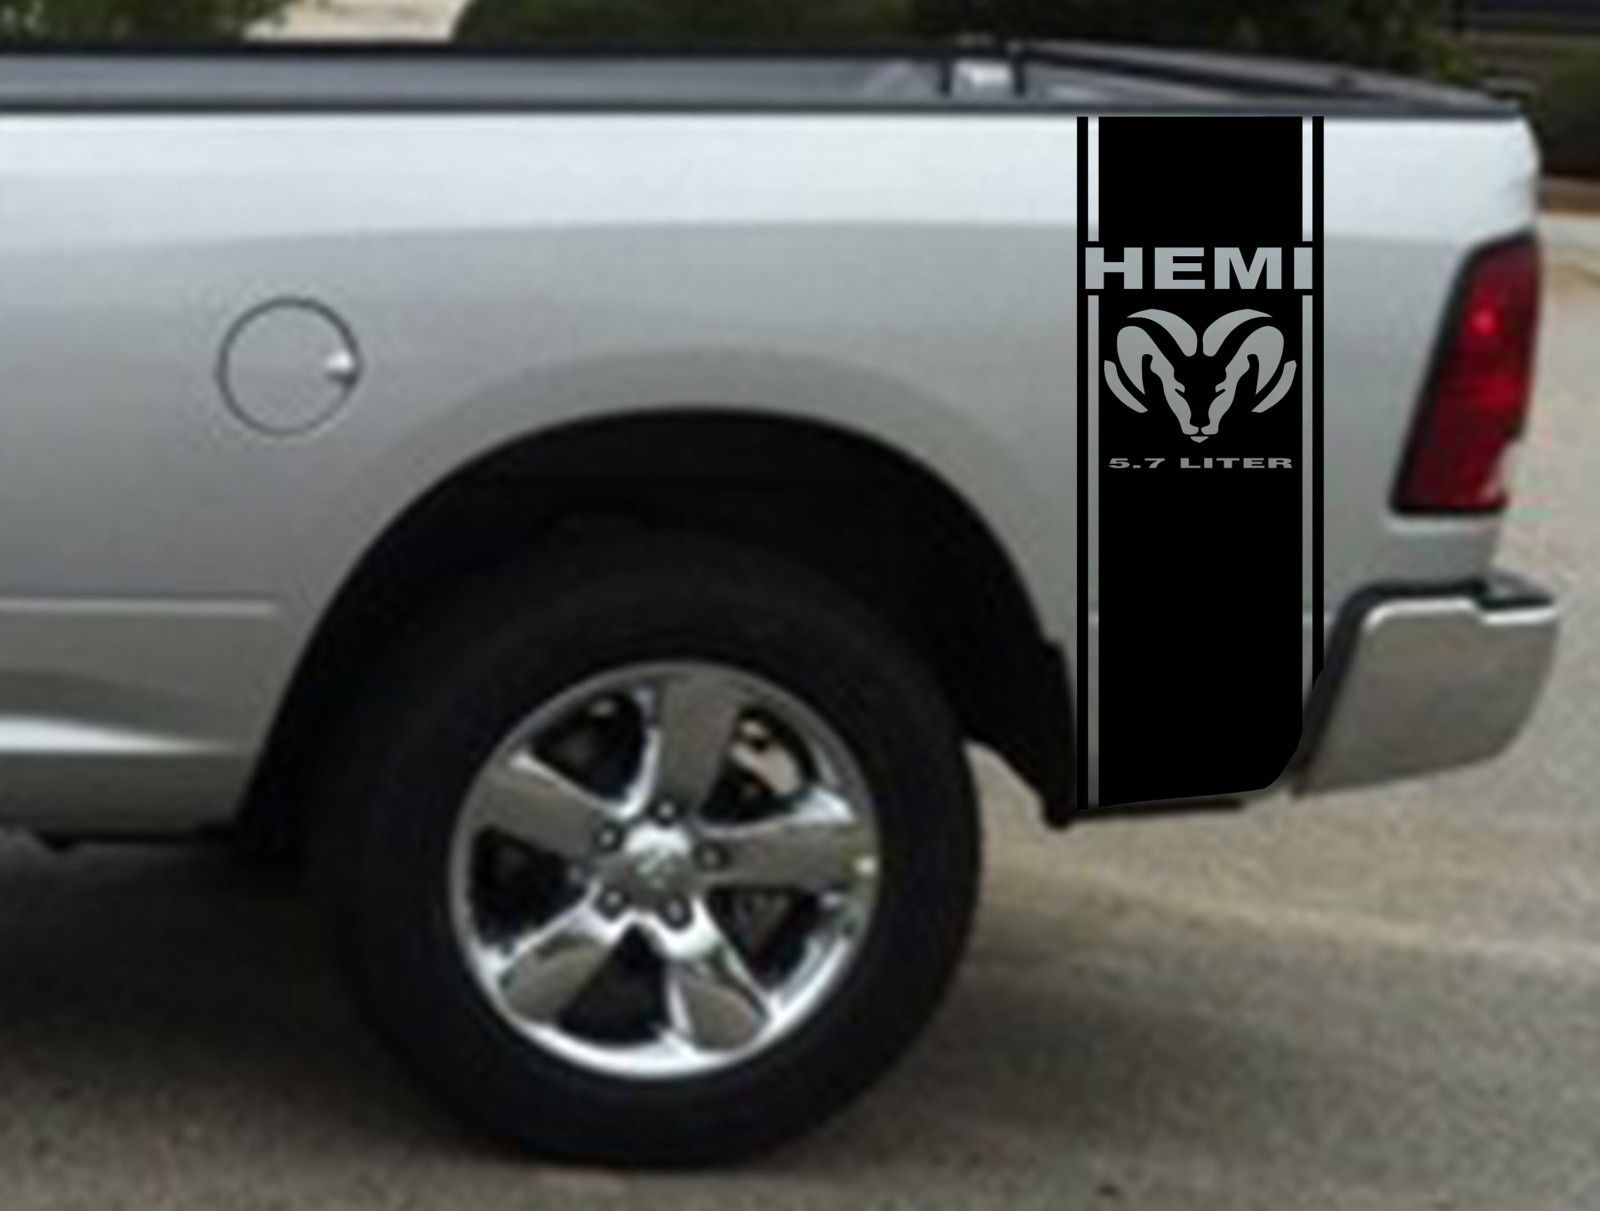 Product Hemi Liter Ram Stripe Dodge Ram Truck Vinyl Decal - Truck bed decals custombody graphicsdodge ram